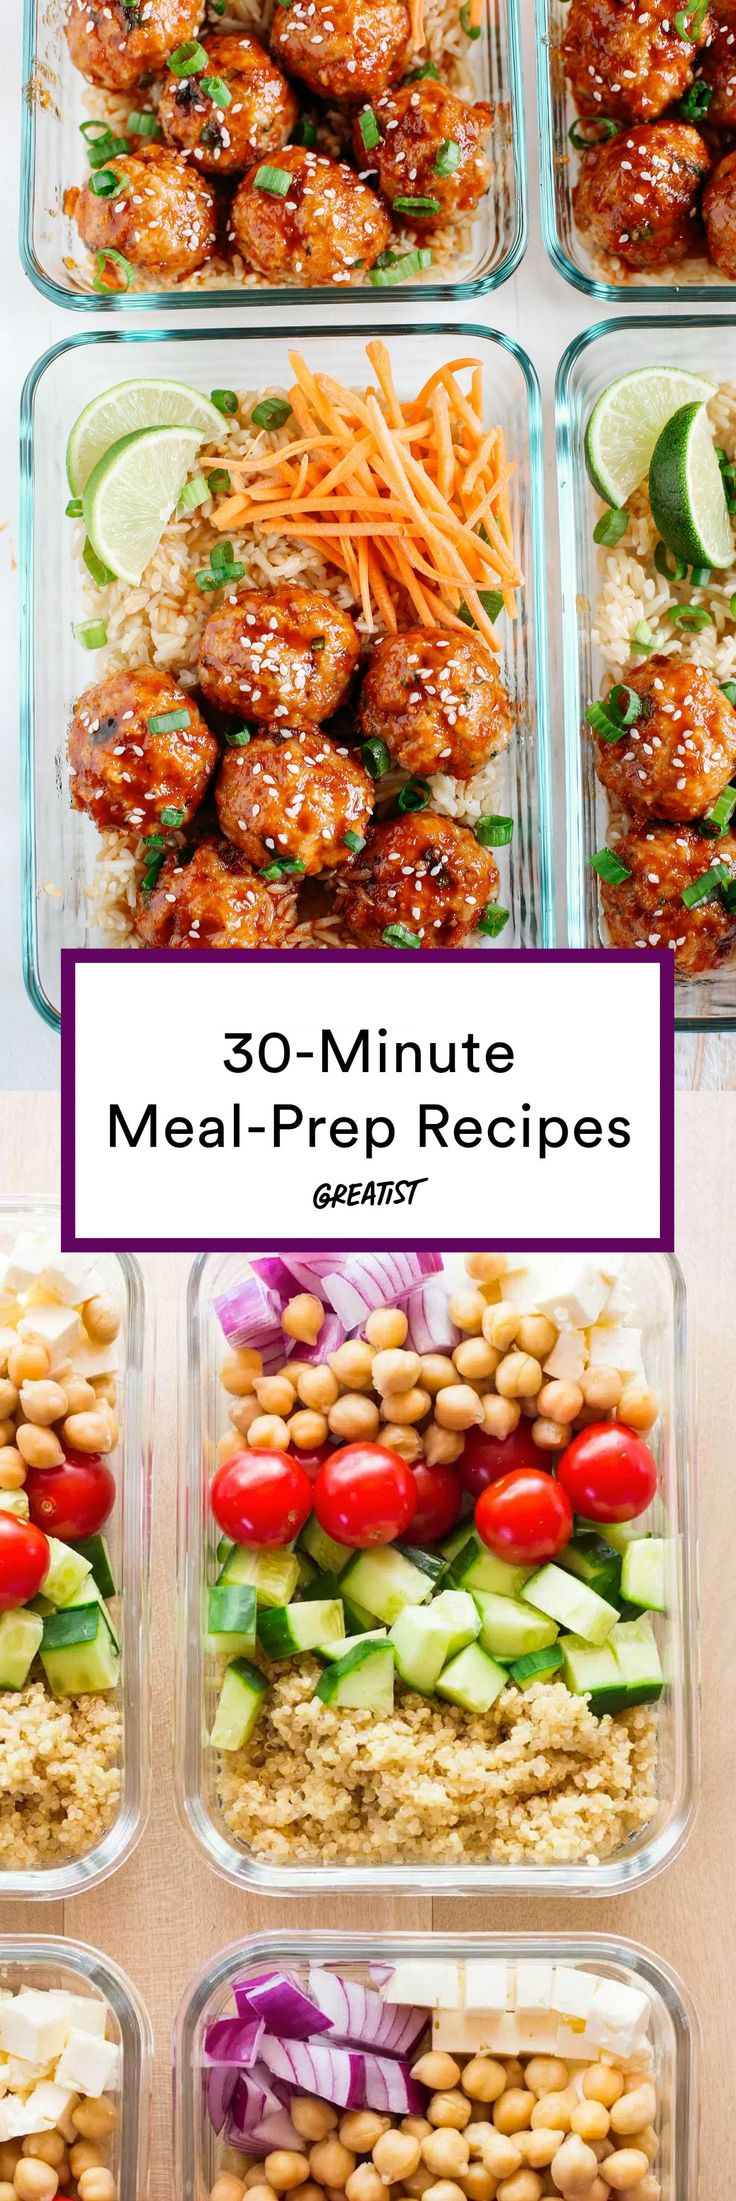 Meal prep for people who don't feel like meal-prep…